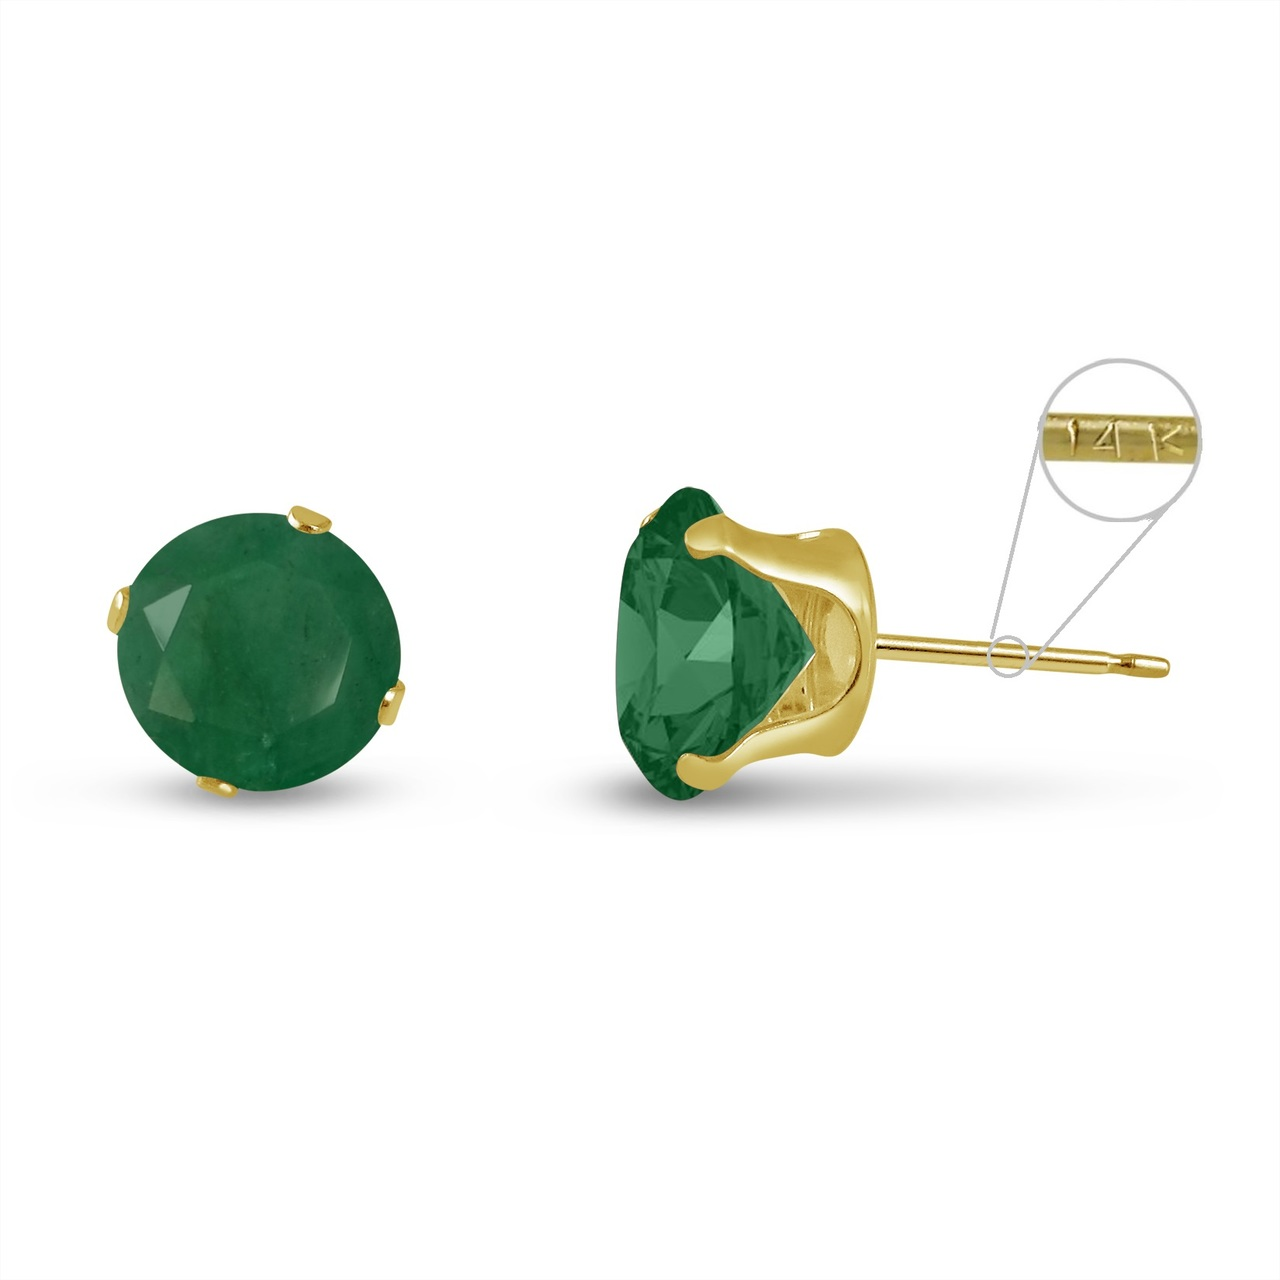 spade kate earrings i stud new tradesy geen green emerald round